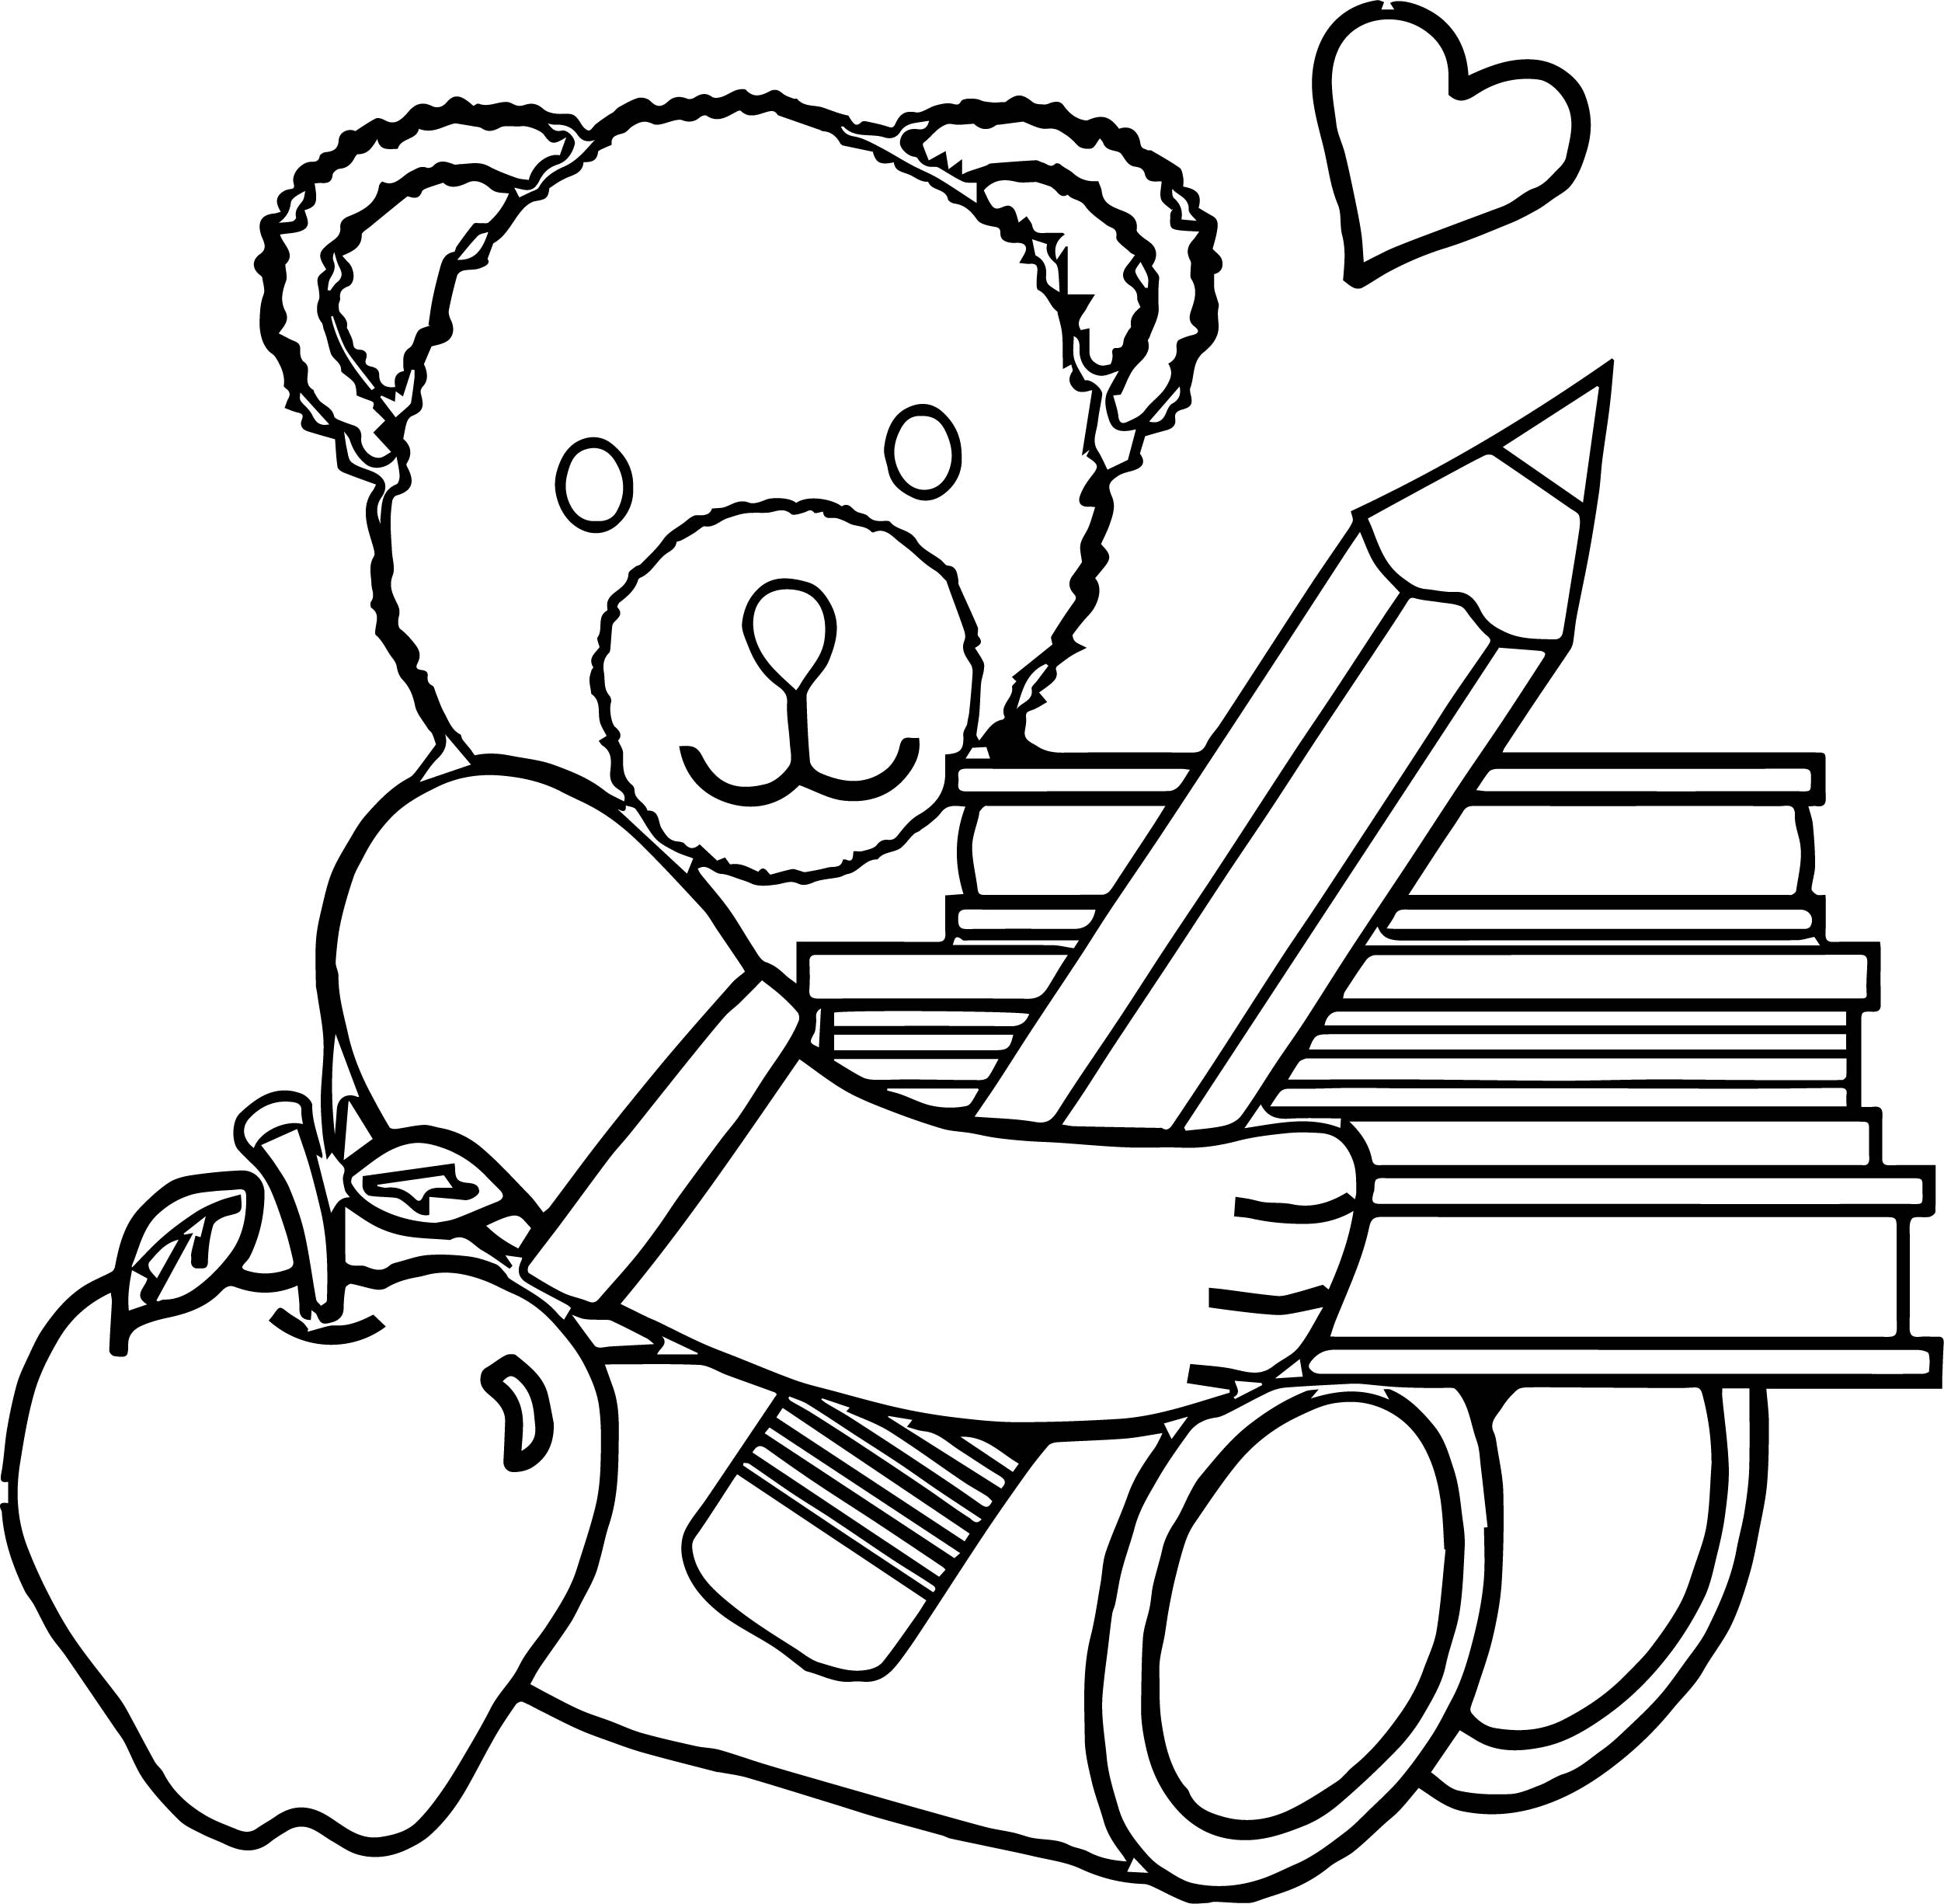 Bear big pencil coloring page for Big coloring pages